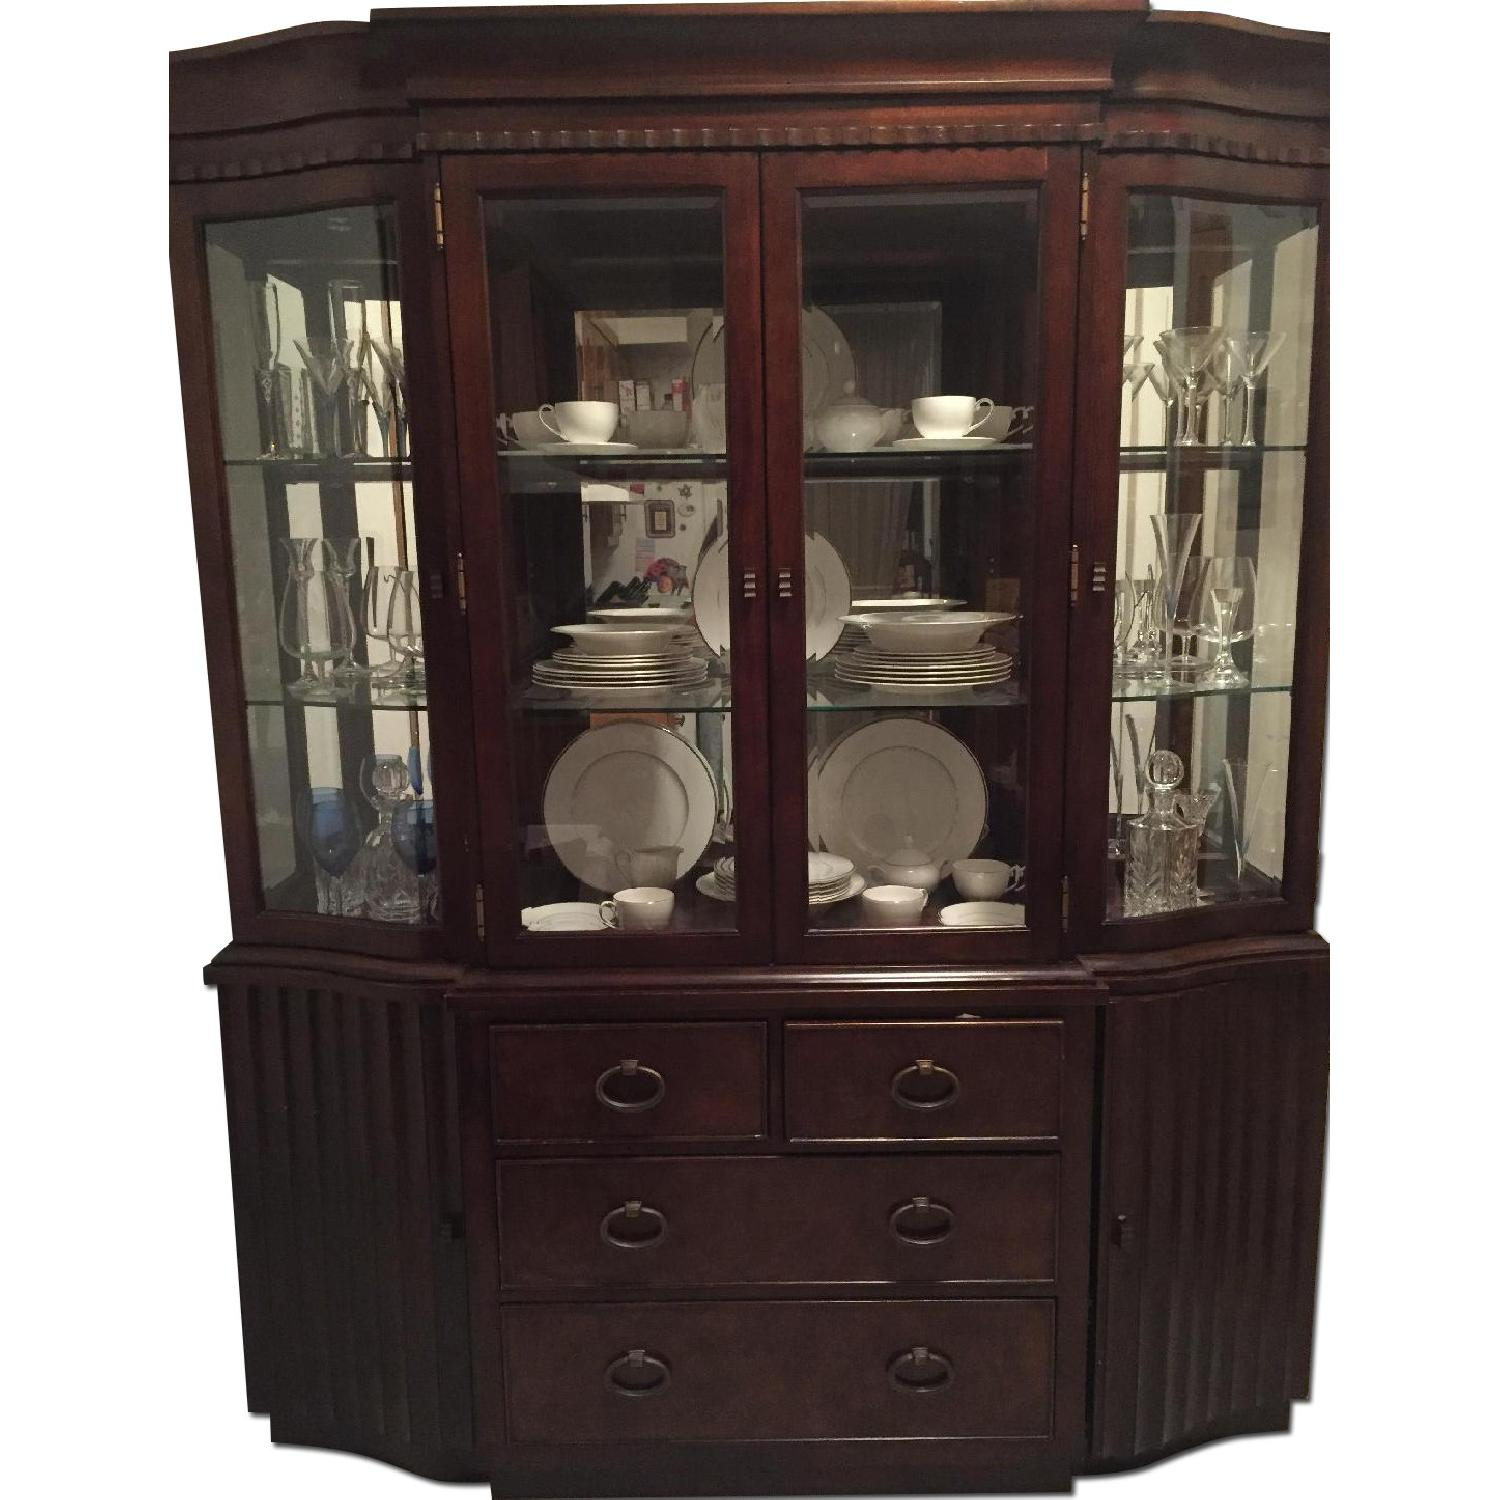 Expandable Dining Table w/ 6 Chairs + China Closet - image-0